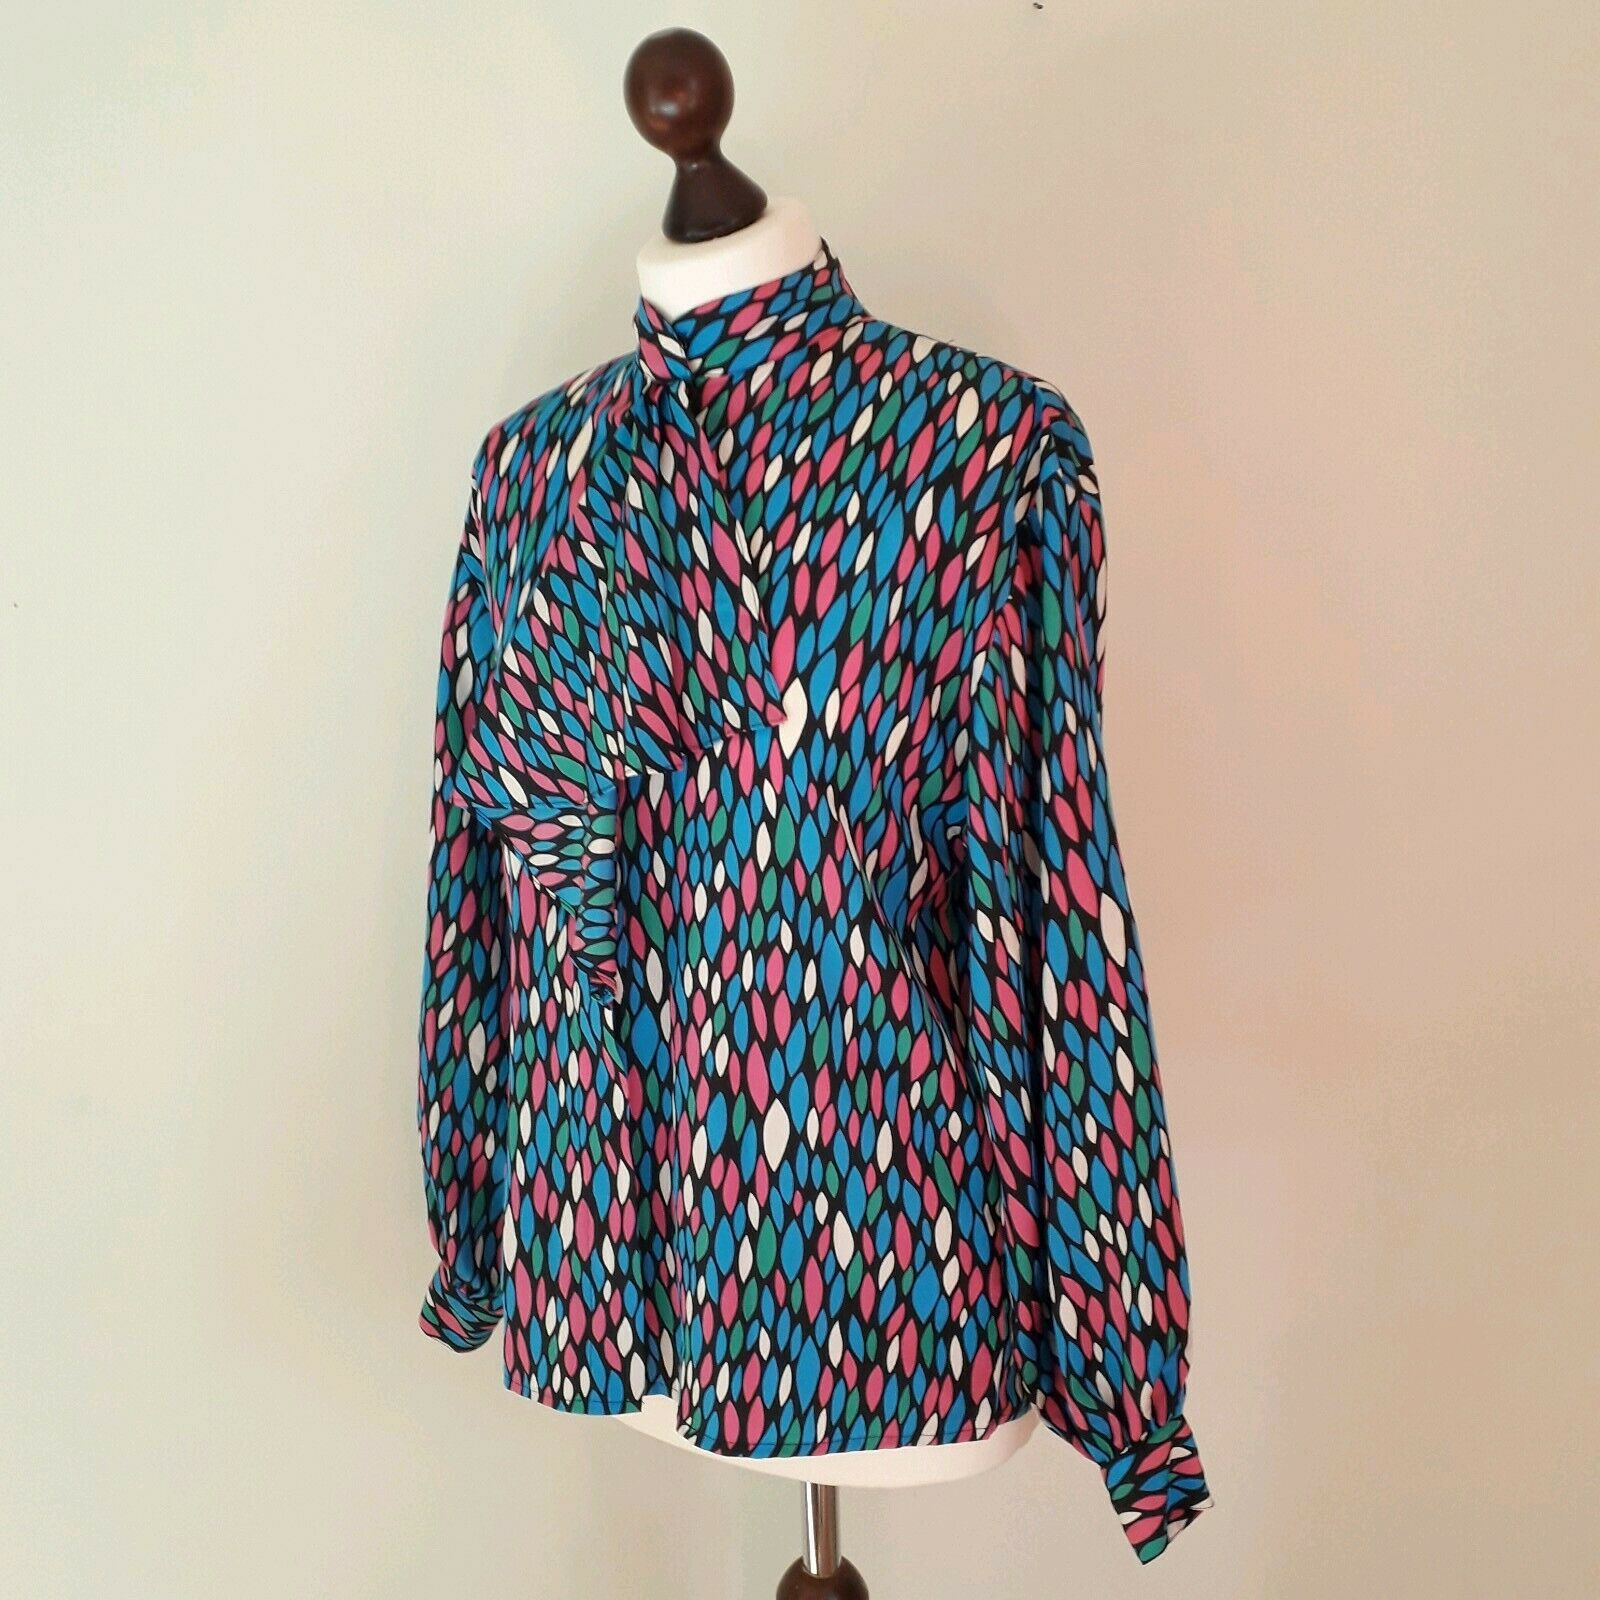 Balenciaga Womens Vintage Blouse Top 6 8 Psychedelic Ruffle Pink bluee Loud 80s